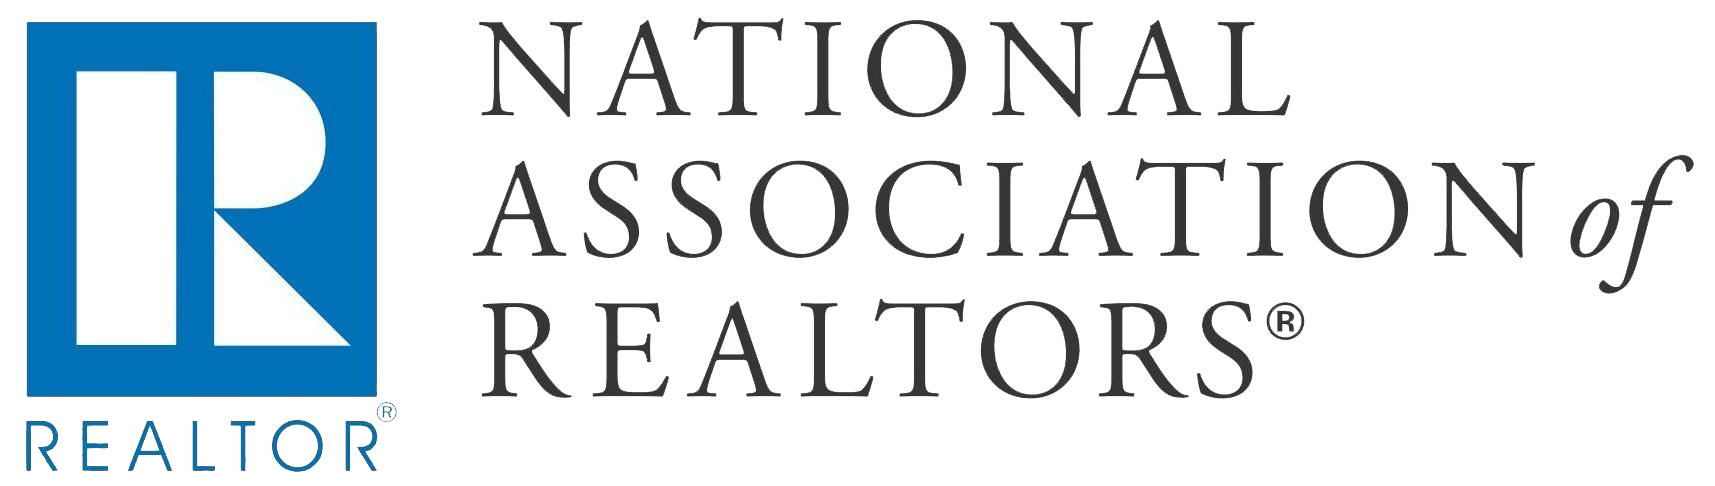 National Association of Realtor's Logo